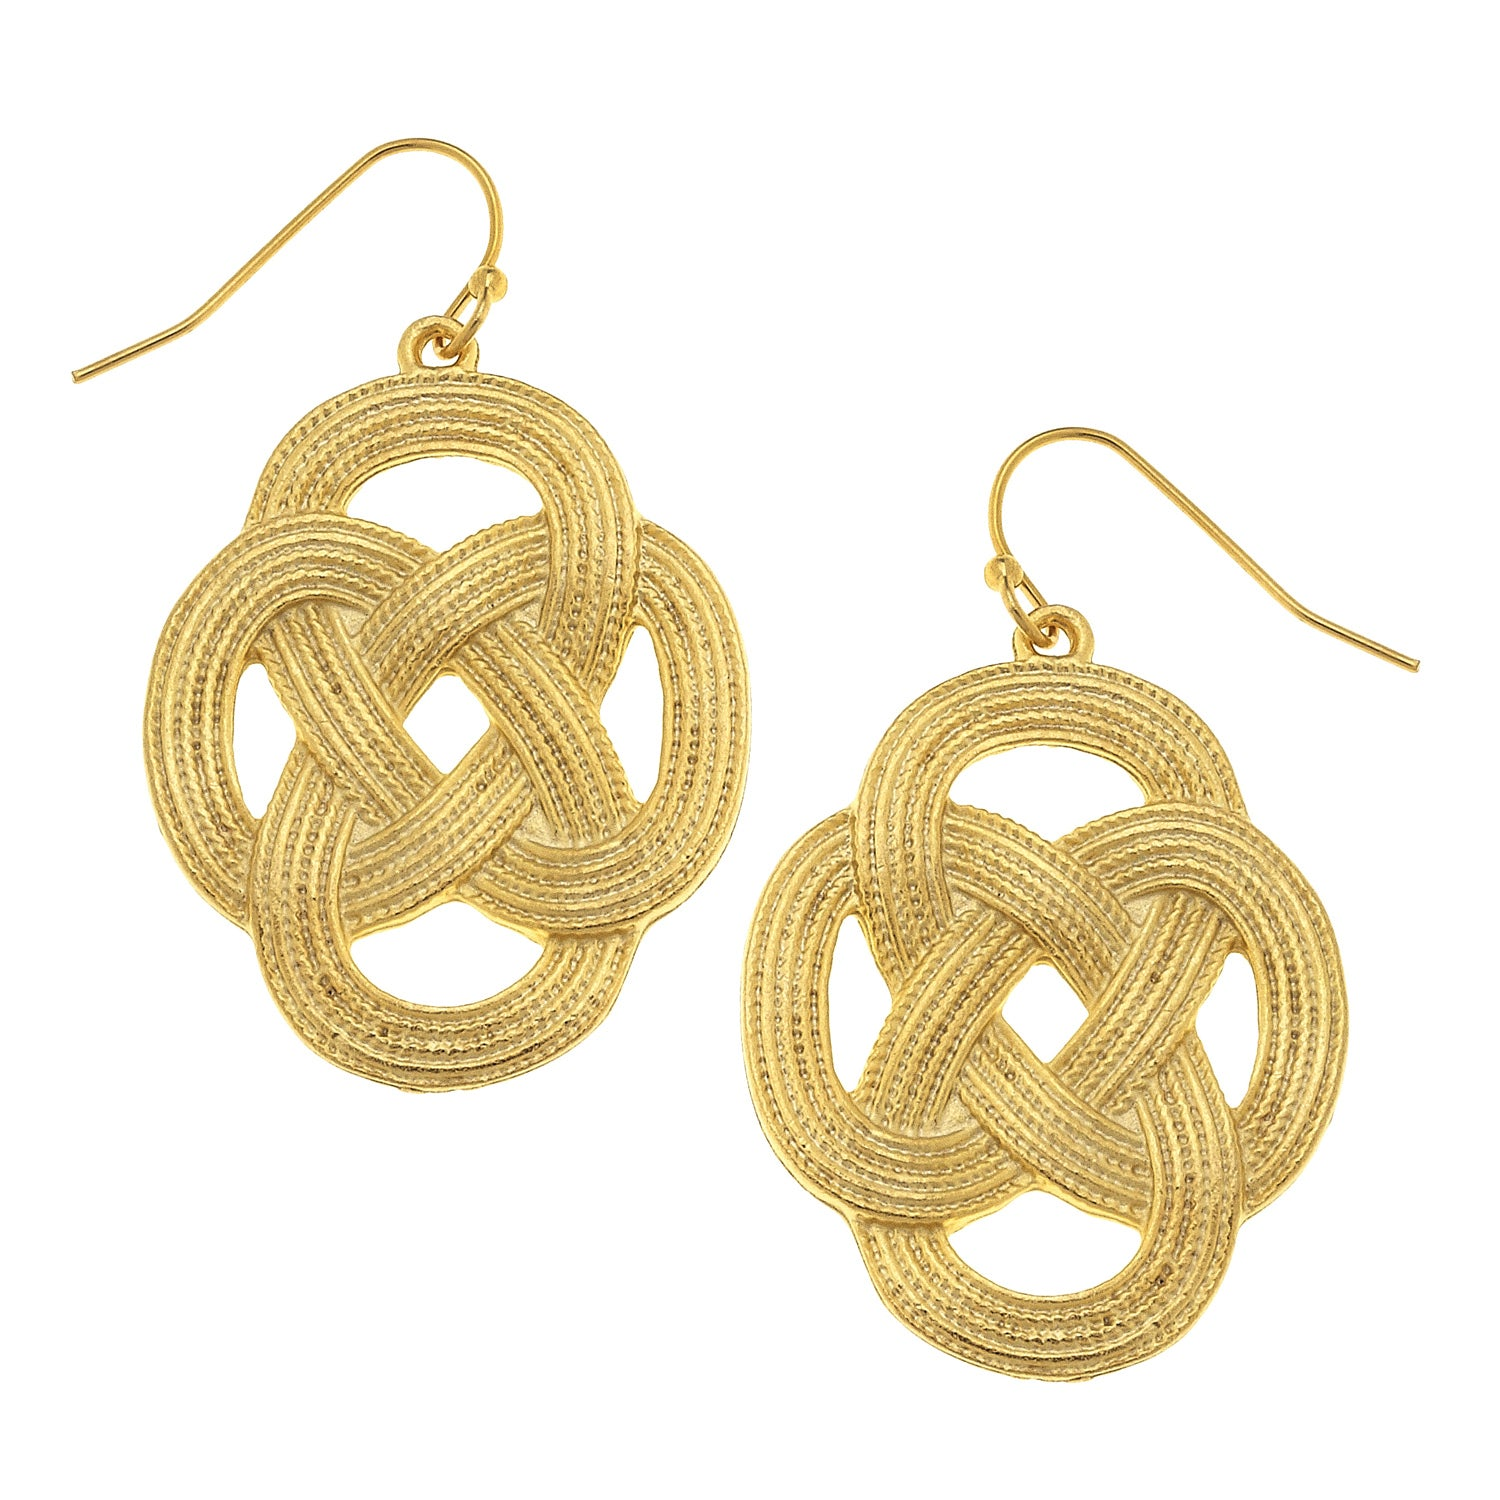 Susan Shaw Woven Loop Earrings